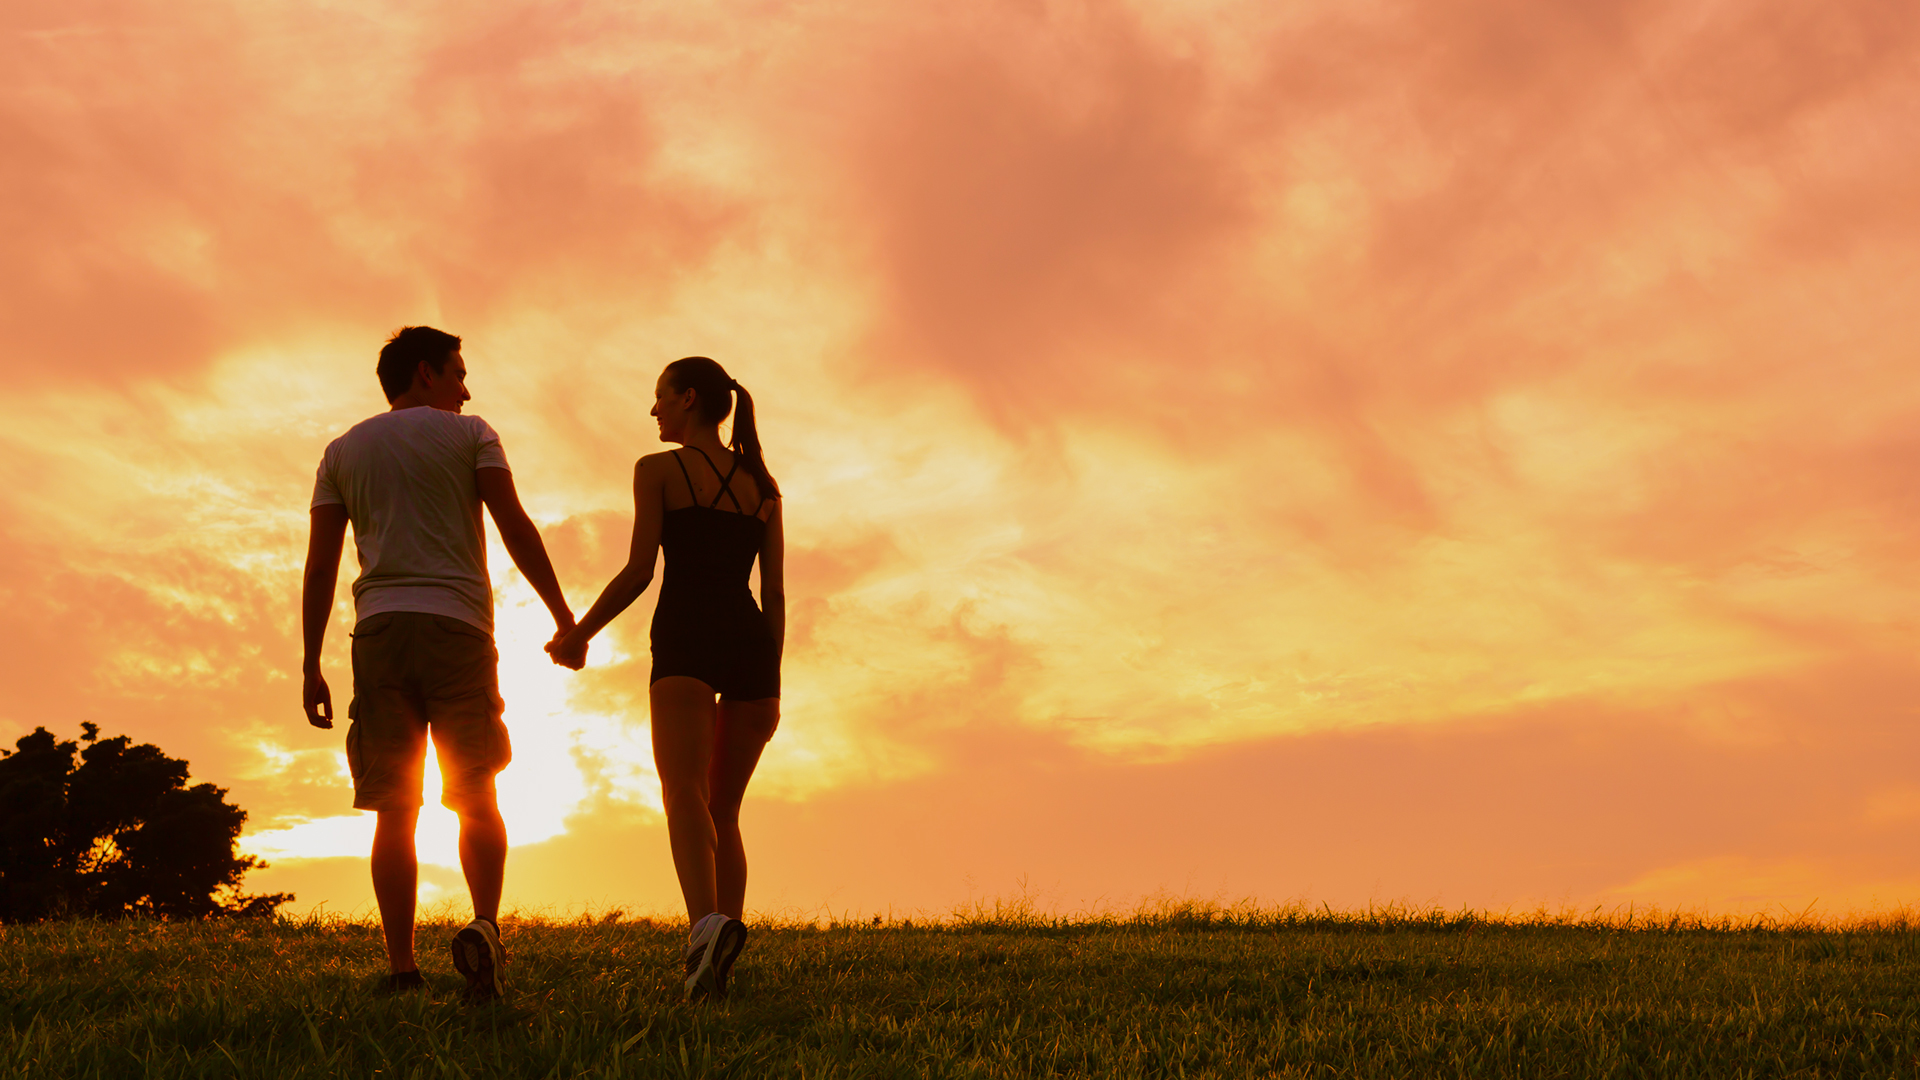 Empowering couples to unlock their potential for true happiness.